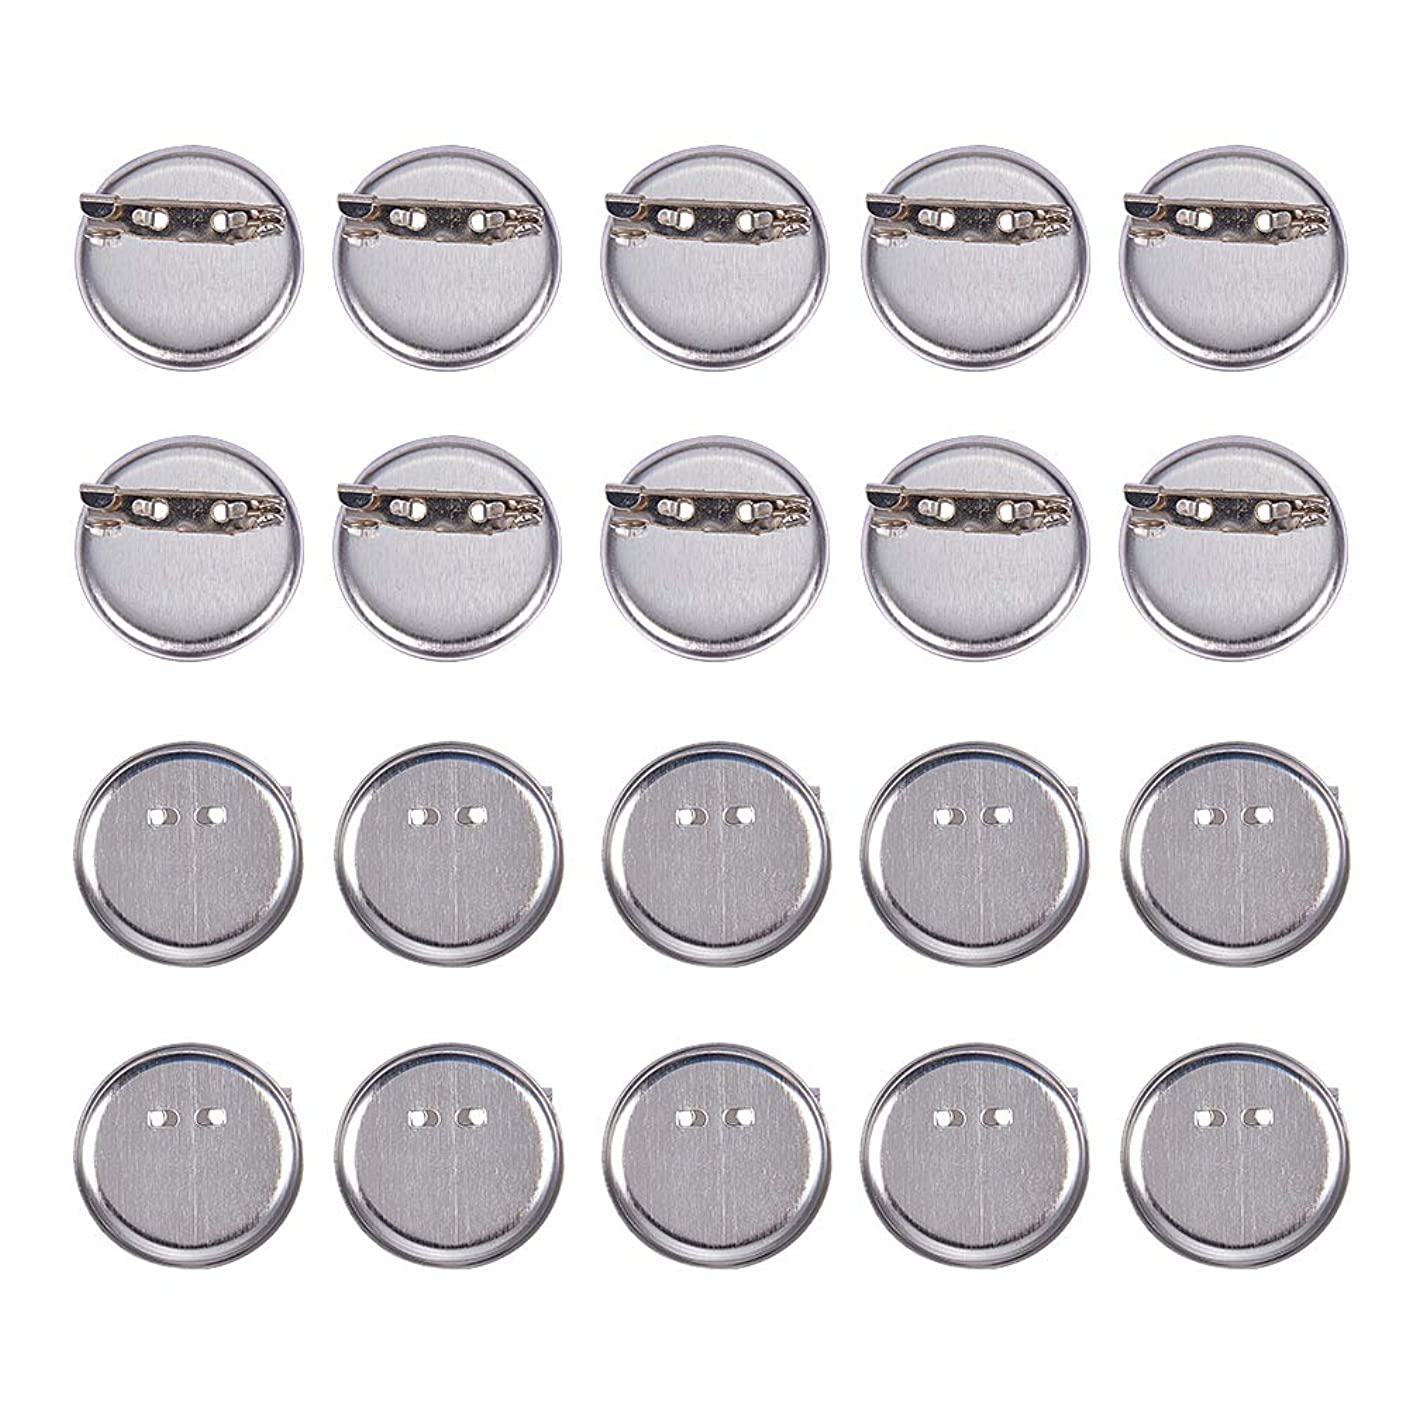 PandaHall 20 Pcs Iron Brooch Clasps Pin Disk Base Pad Bezel Blank Cabochon Trays Backs Bar Diameter 29mm for Badge, Corsage, Name Tags and Jewelry Craft Making Platinum